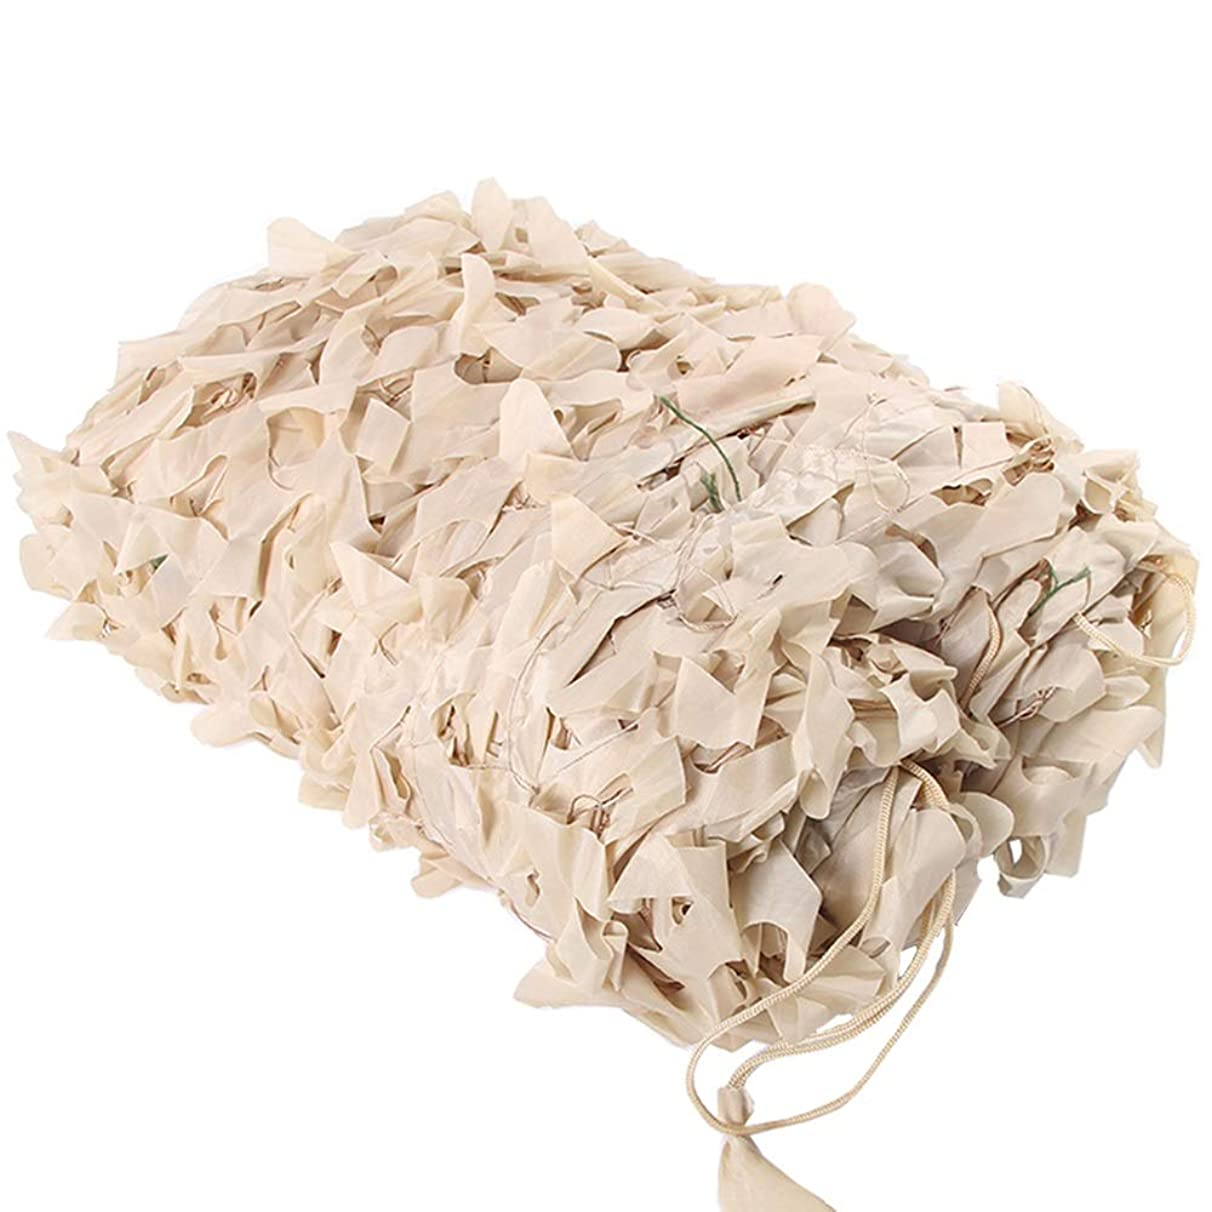 XIAOXIAO Camouflage Net, Blinds for Sunshade Camping, Garden Party Decoration, Sun Protection Awning, (2x3M) Beige Color